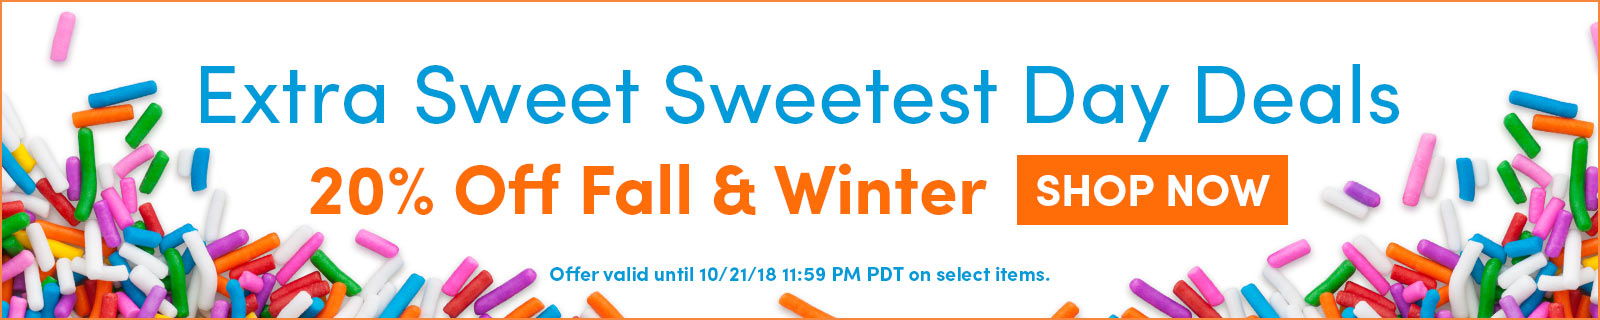 Extra Sweet Sweetest Day Deals - 20% Off Fall & Winter - SHOP NOW